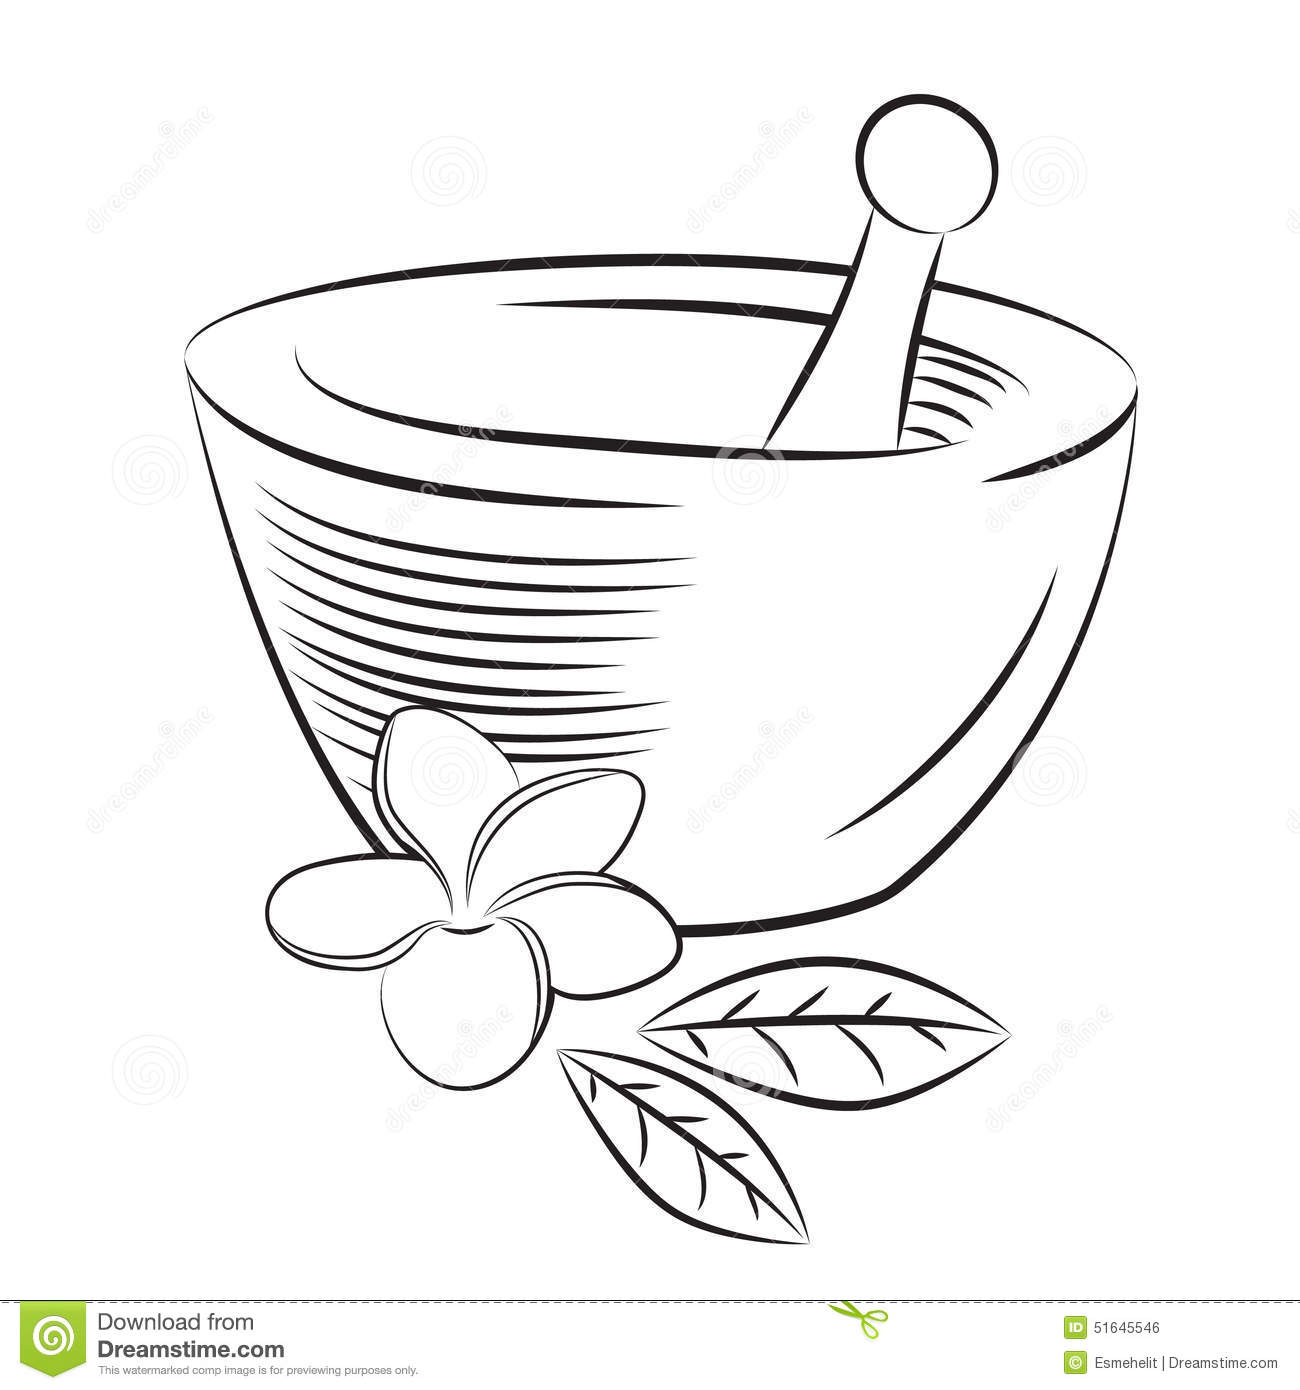 Mortar And Pestle With Frangipani Flower Graphic Style Stock ... for Mortar And Pestle Drawing  54lyp